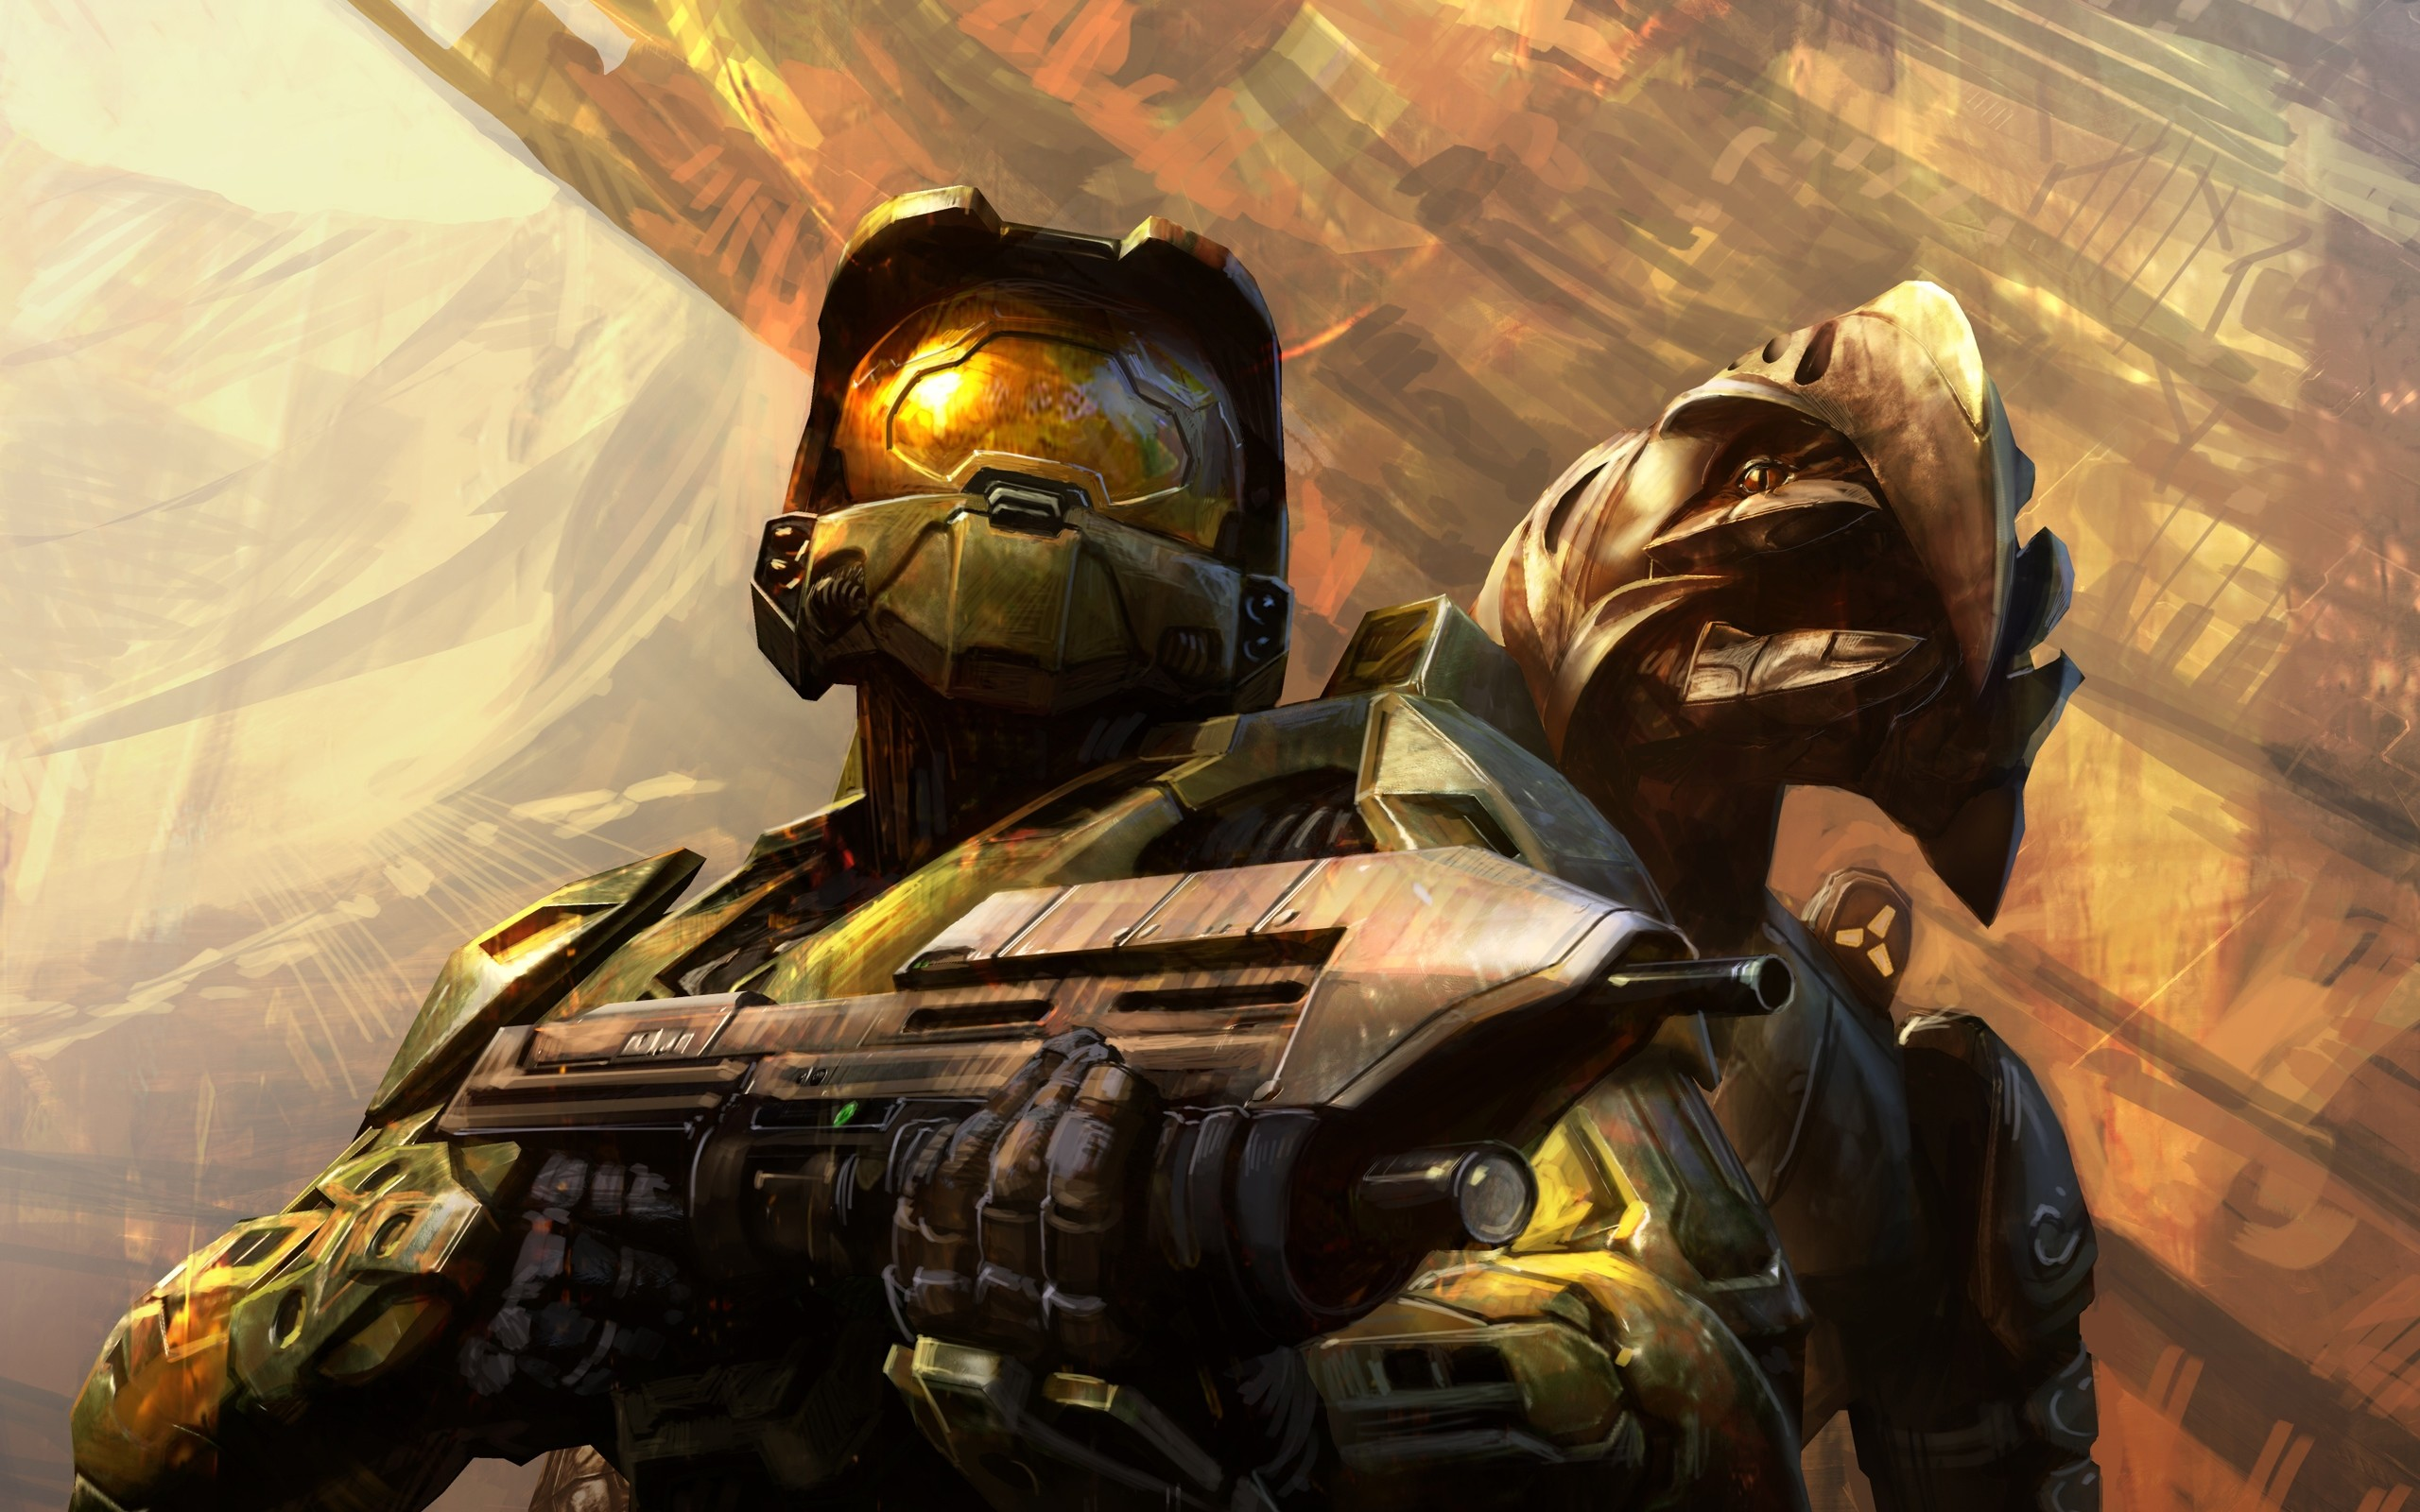 Res: 2560x1600, Halo 3 HD Wallpaper | Background Image |  | ID:374767 - Wallpaper  Abyss